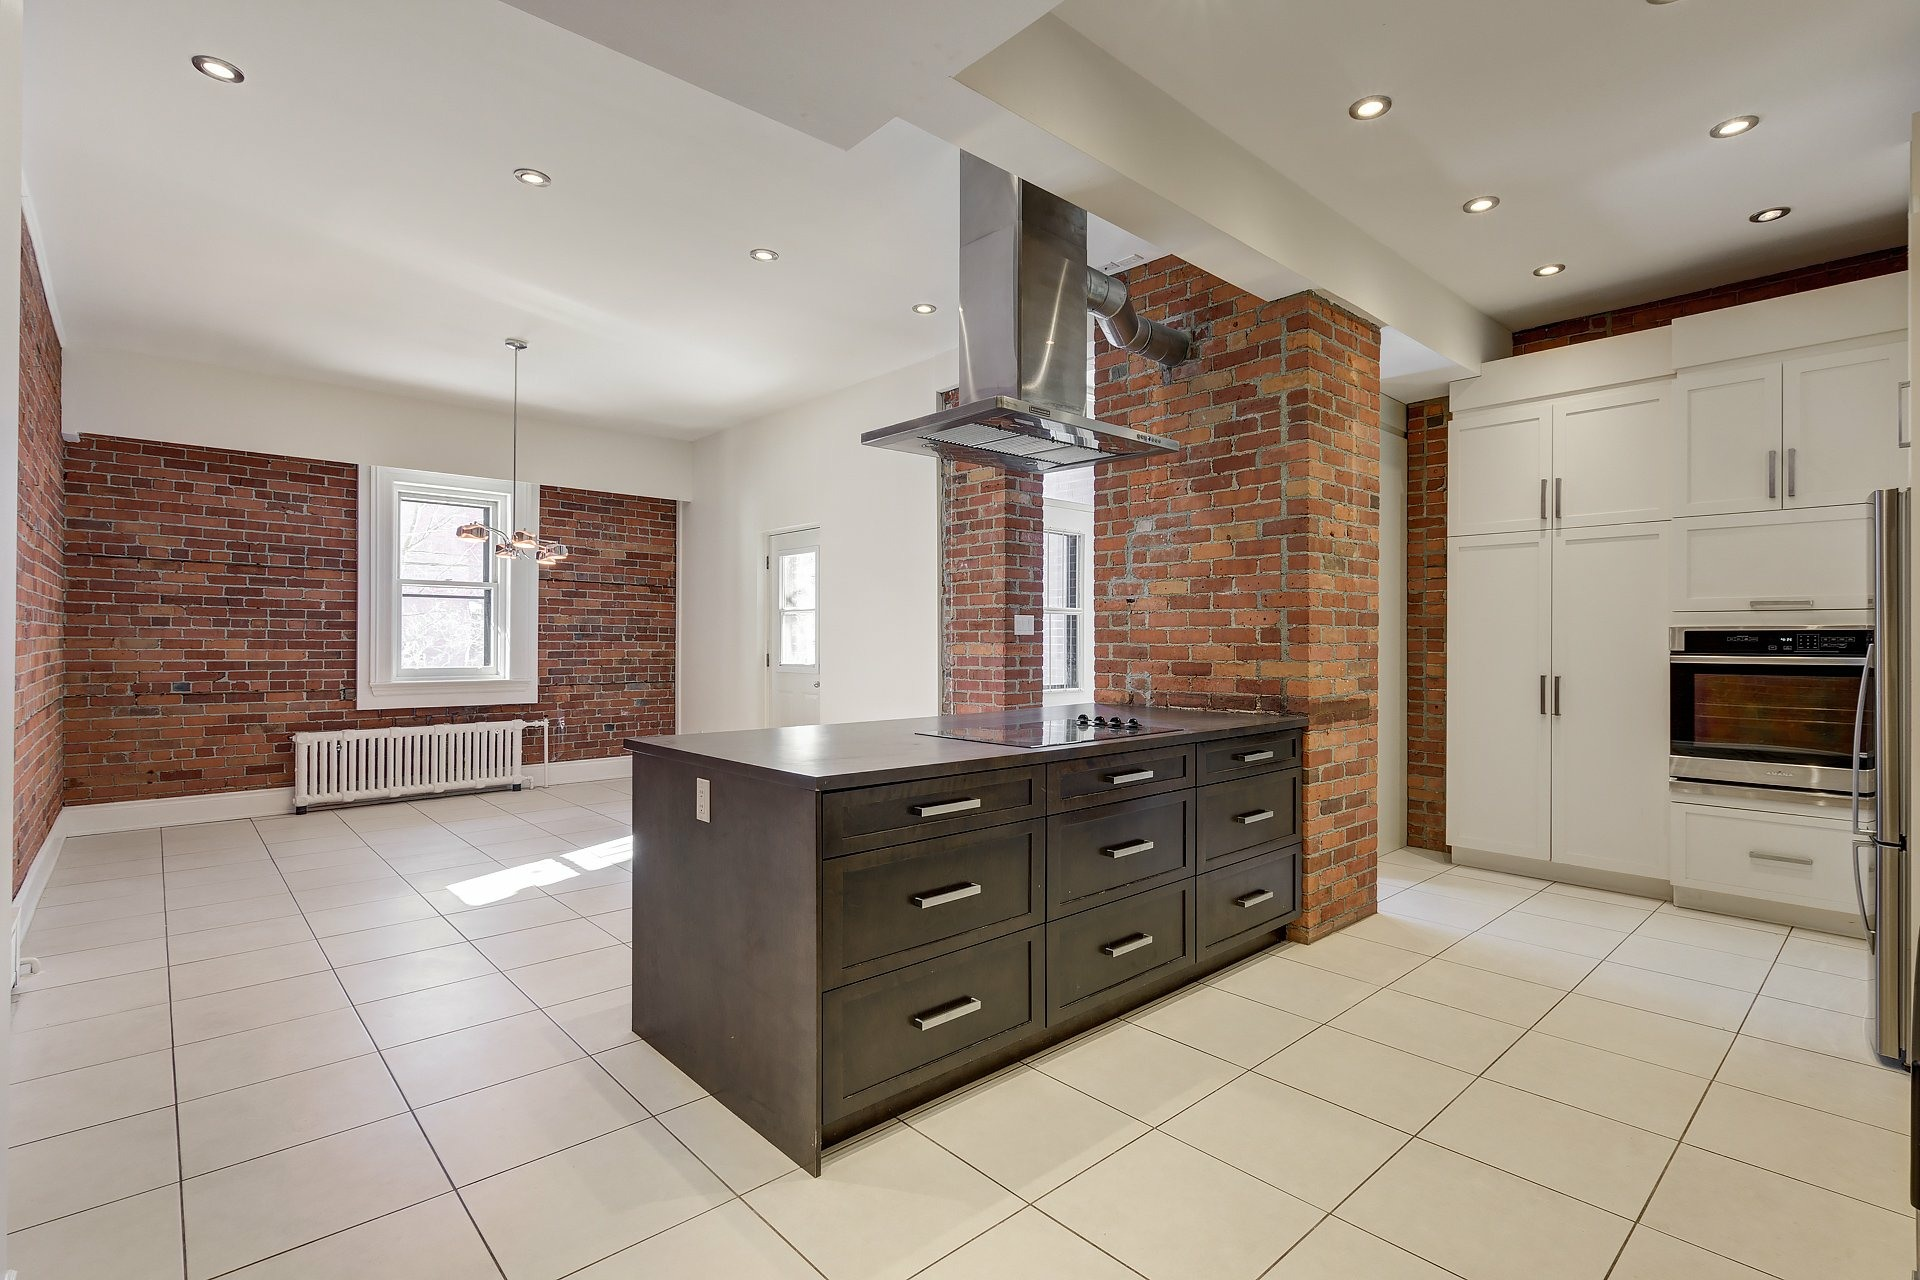 image 6 - House For rent Westmount - 9 rooms